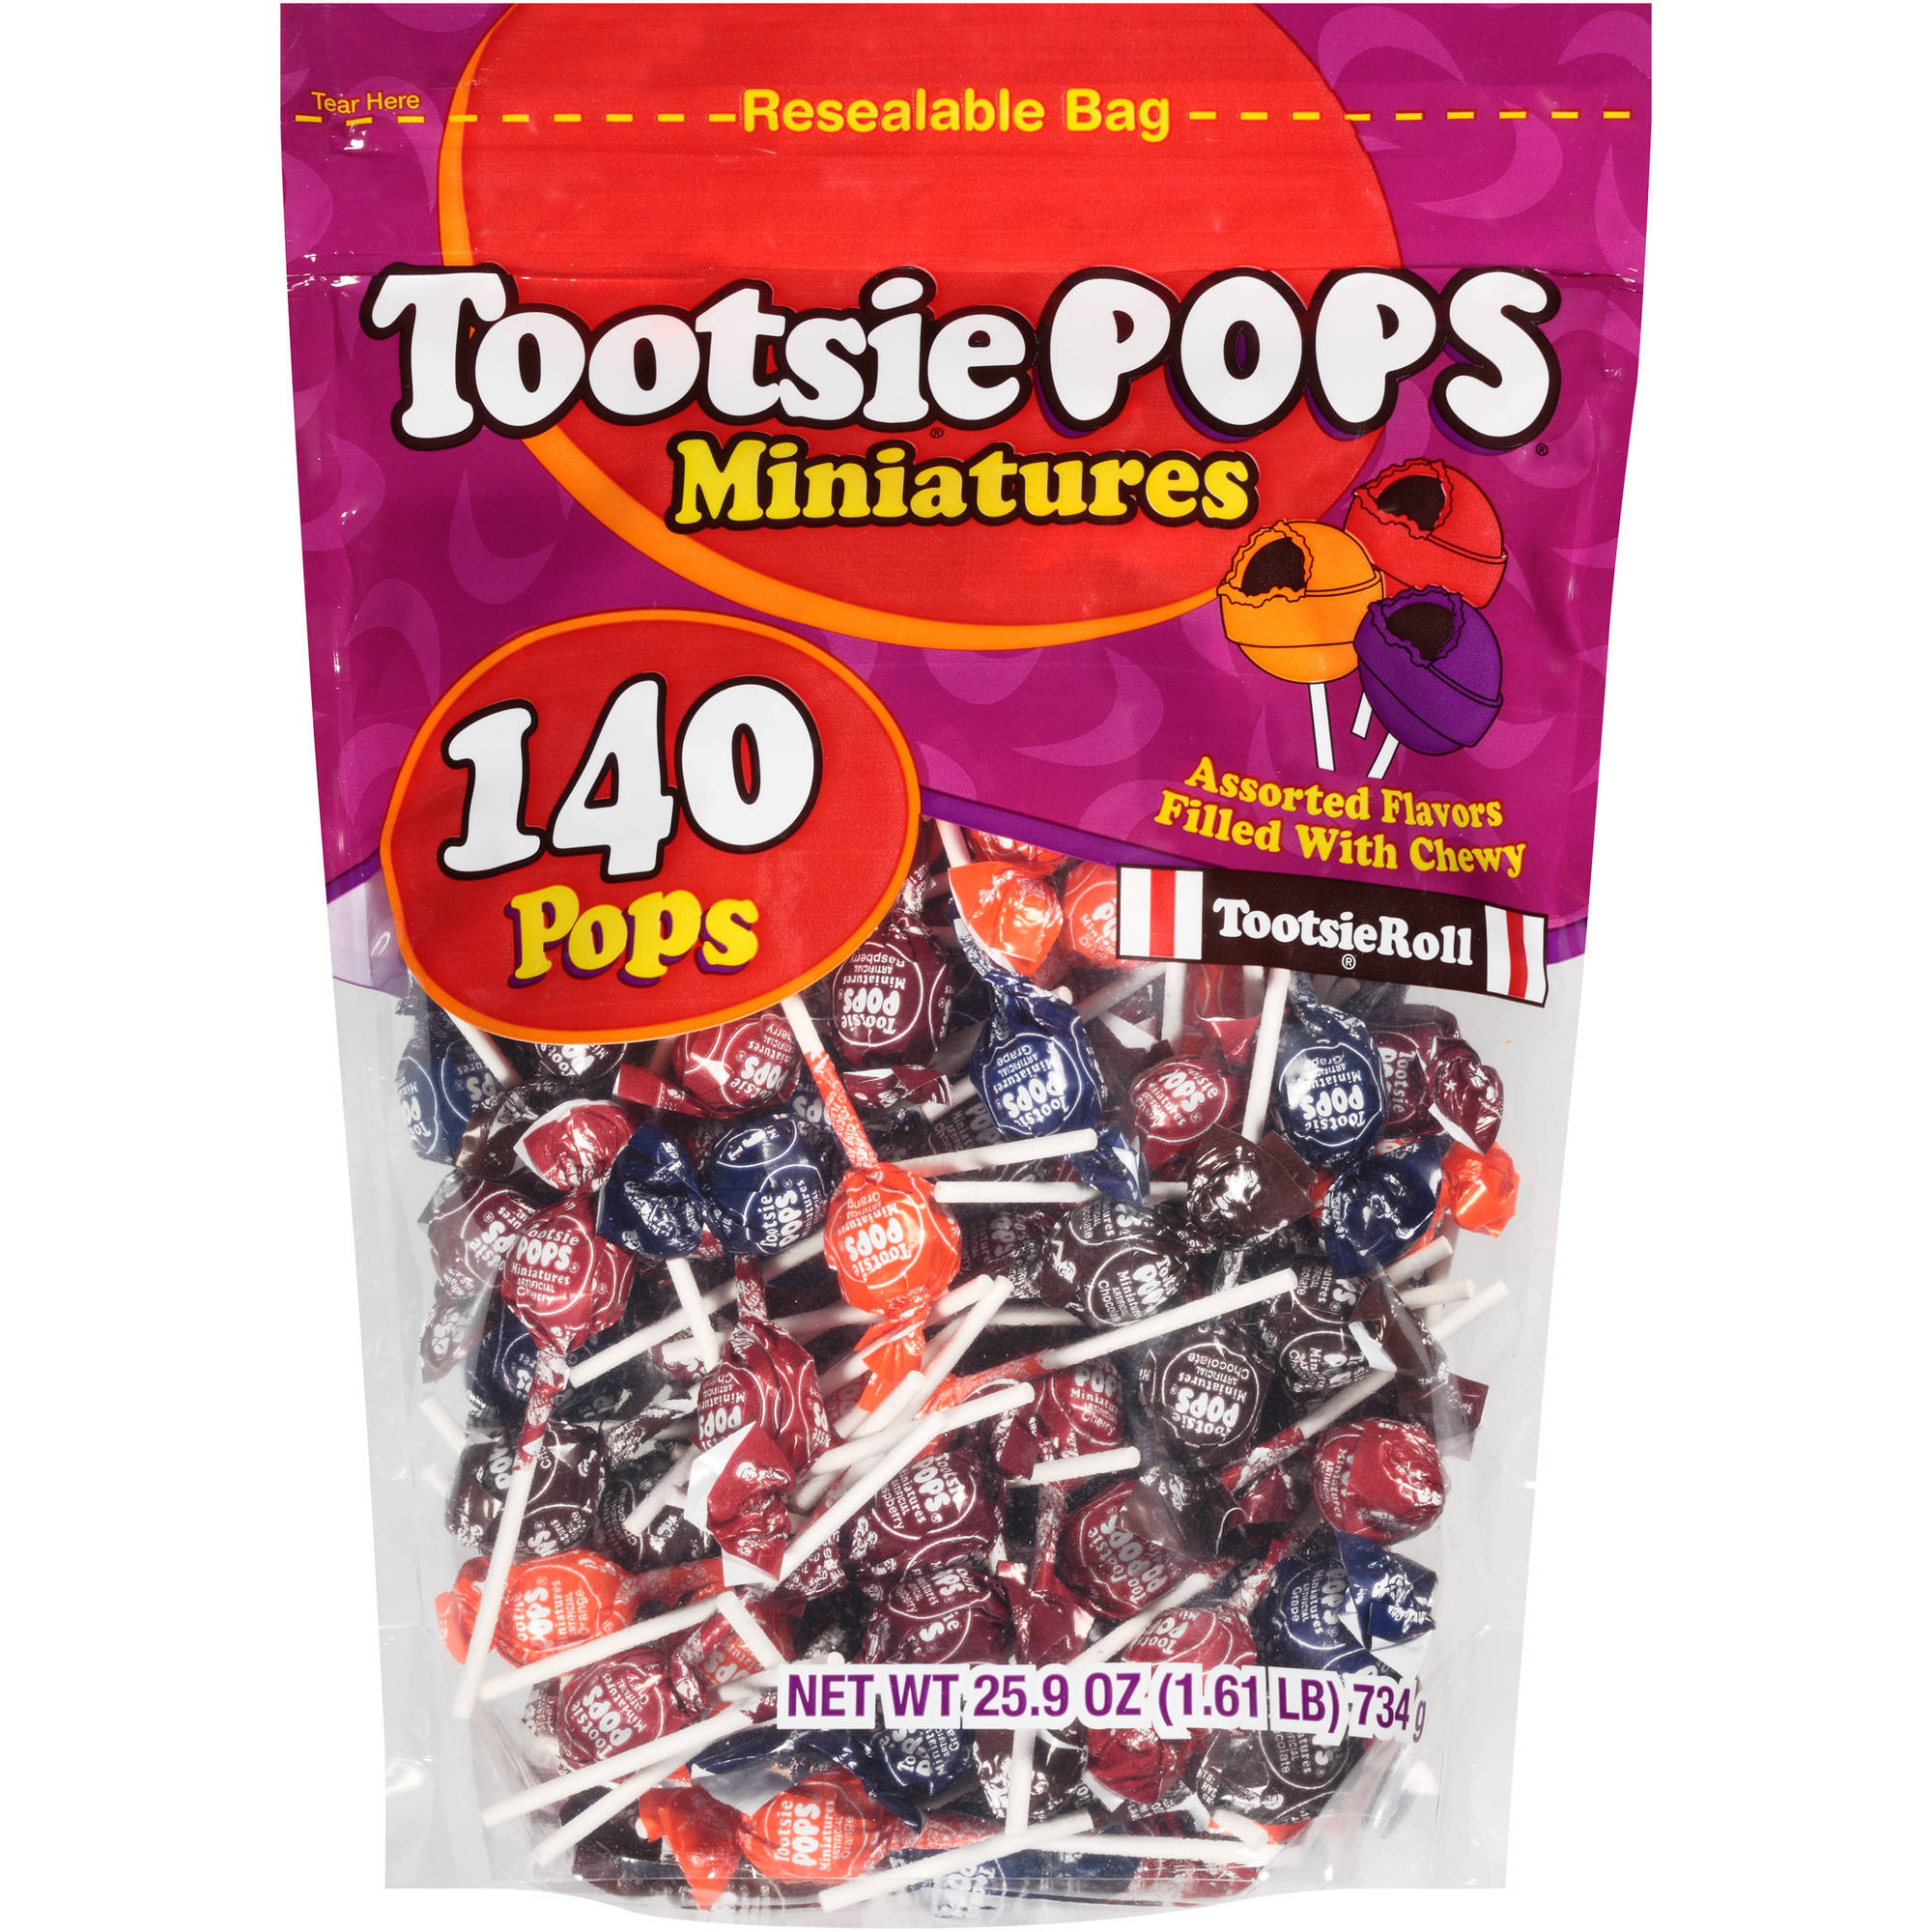 Tootsie Pops Miniatures Lollipops, 140 count, 25.9 oz